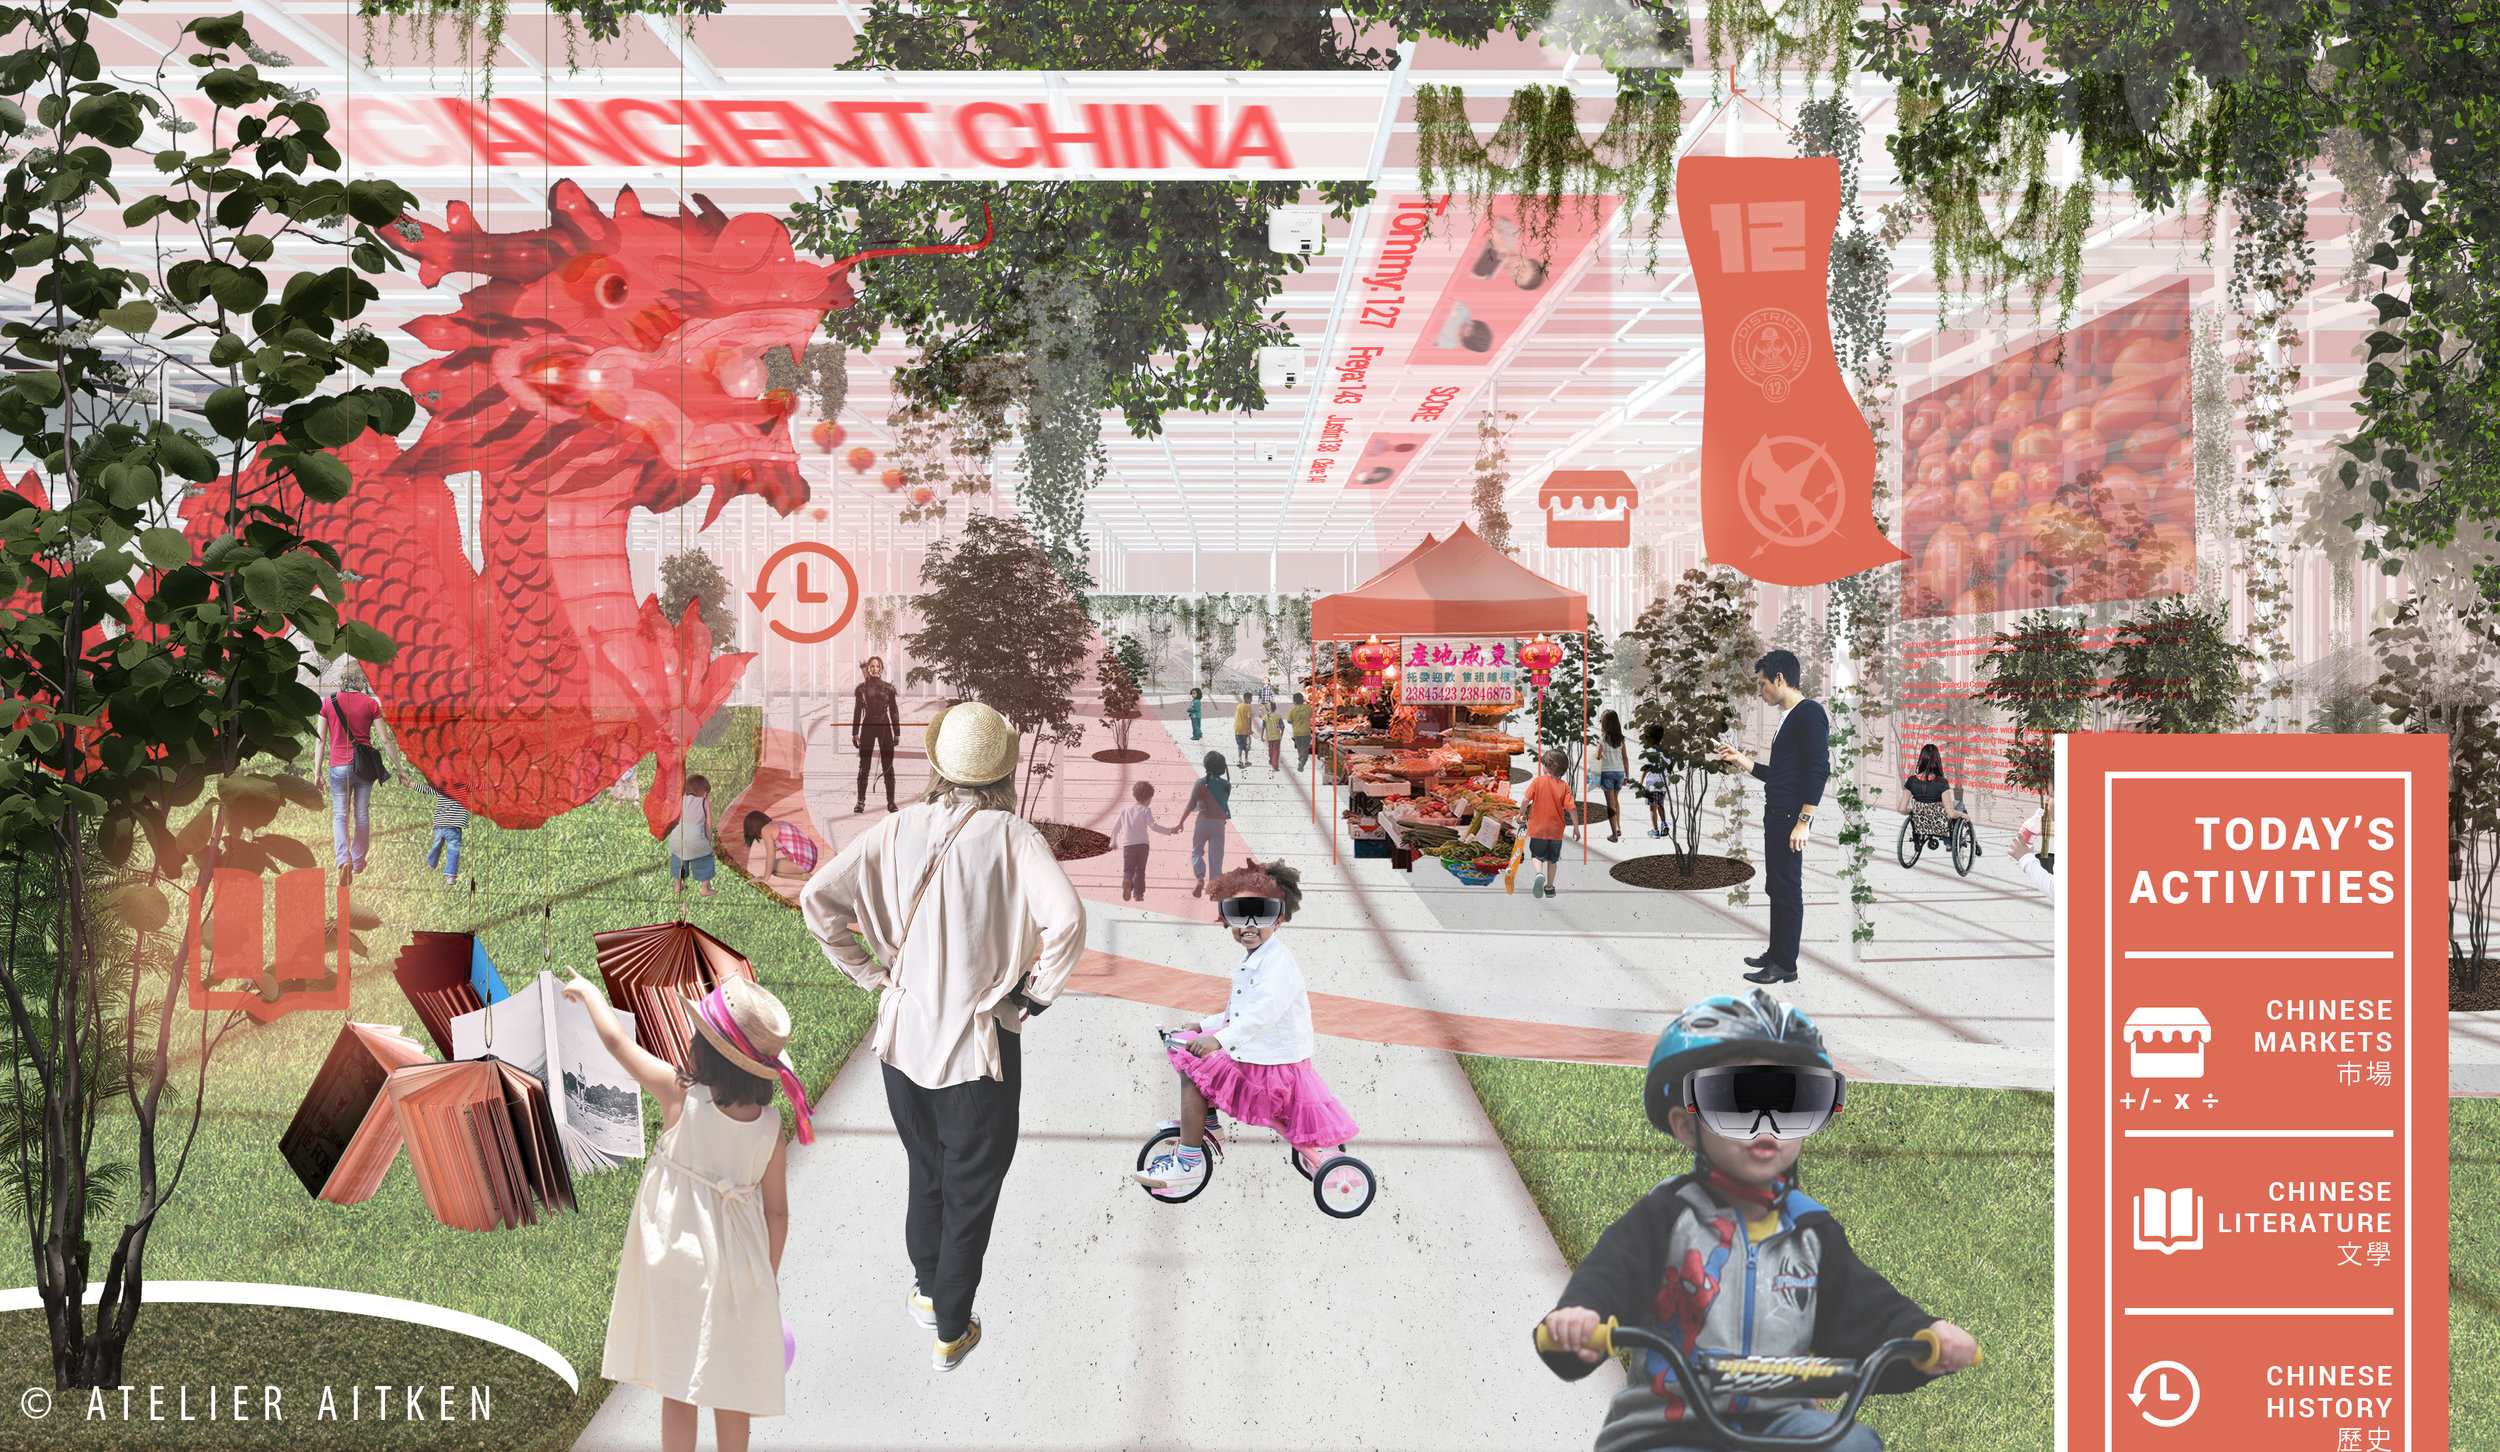 Cultural Immersion: This image shows how the future school may look when exploring Ancient China. Augmented reality tools, such as the Microsoft HoloLens, could allow for the creation of virtual elements such as markets so students can practice their mathematics and foreign language skills. Traditional learning methods will always be welcome such as reading books from our book chandeliers. The actual structure would be adapted to reflect local environments, materials and cultural landscape.